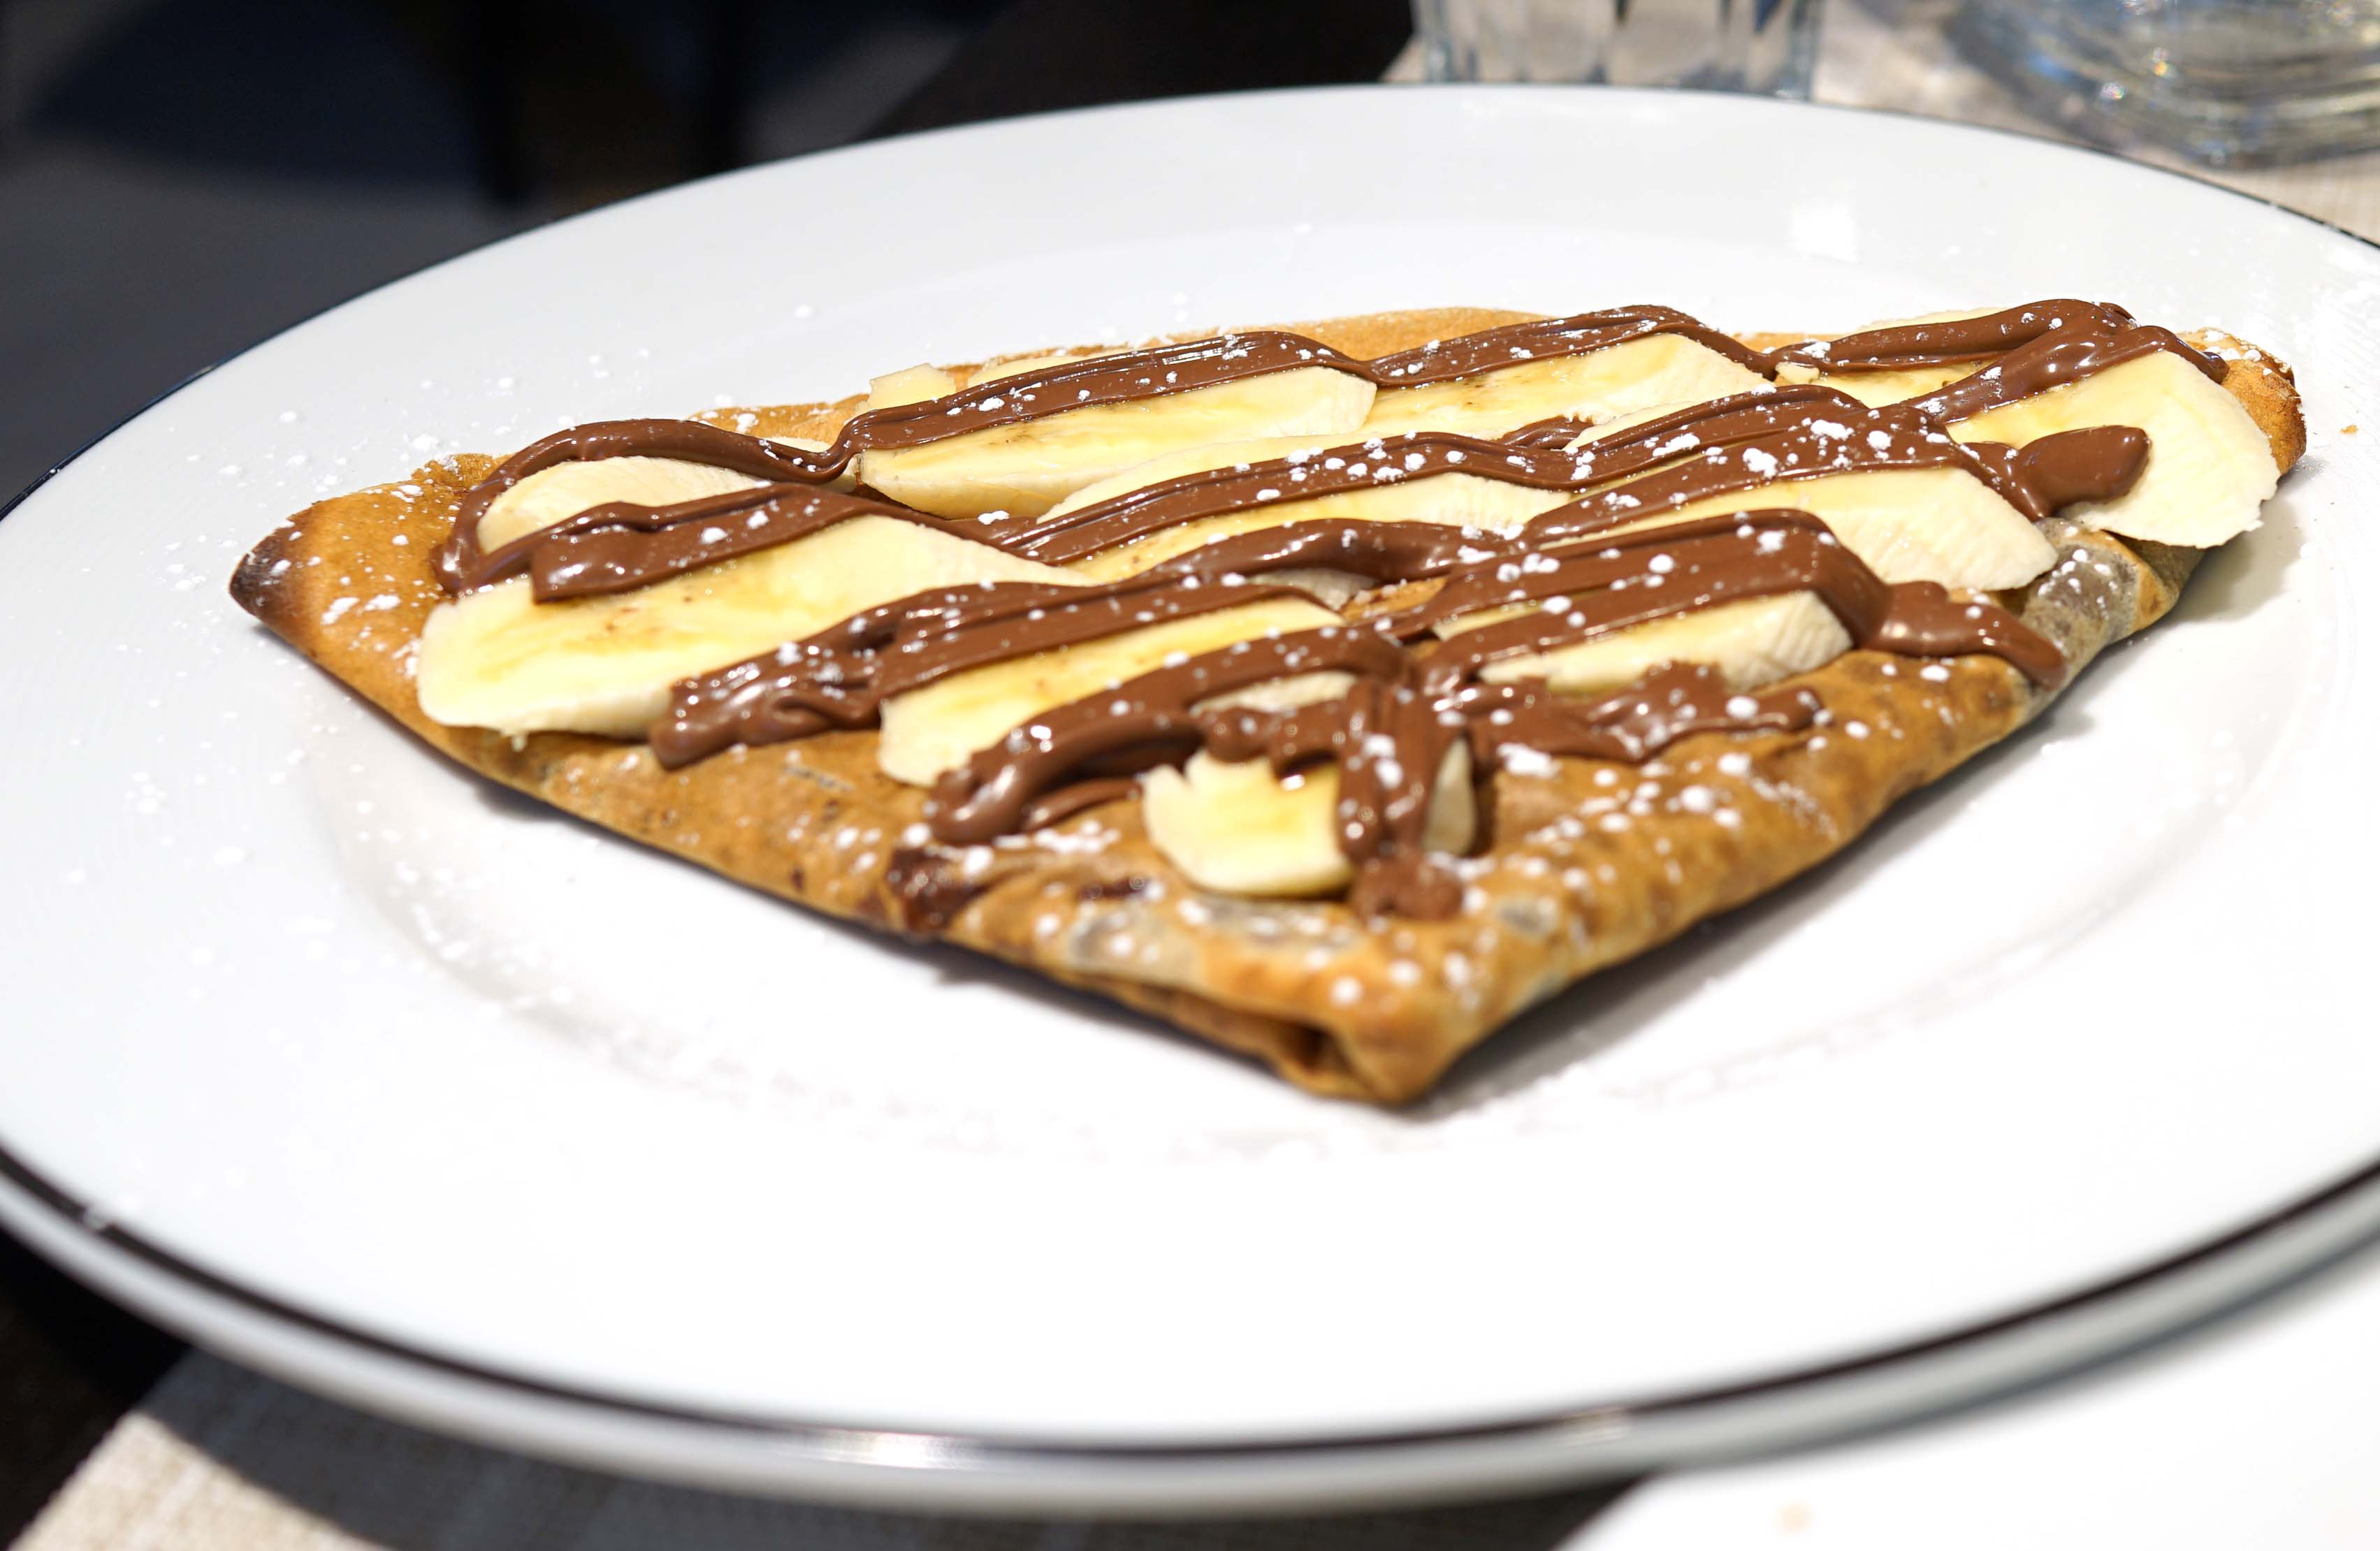 Beaubourg crepe and Nutella